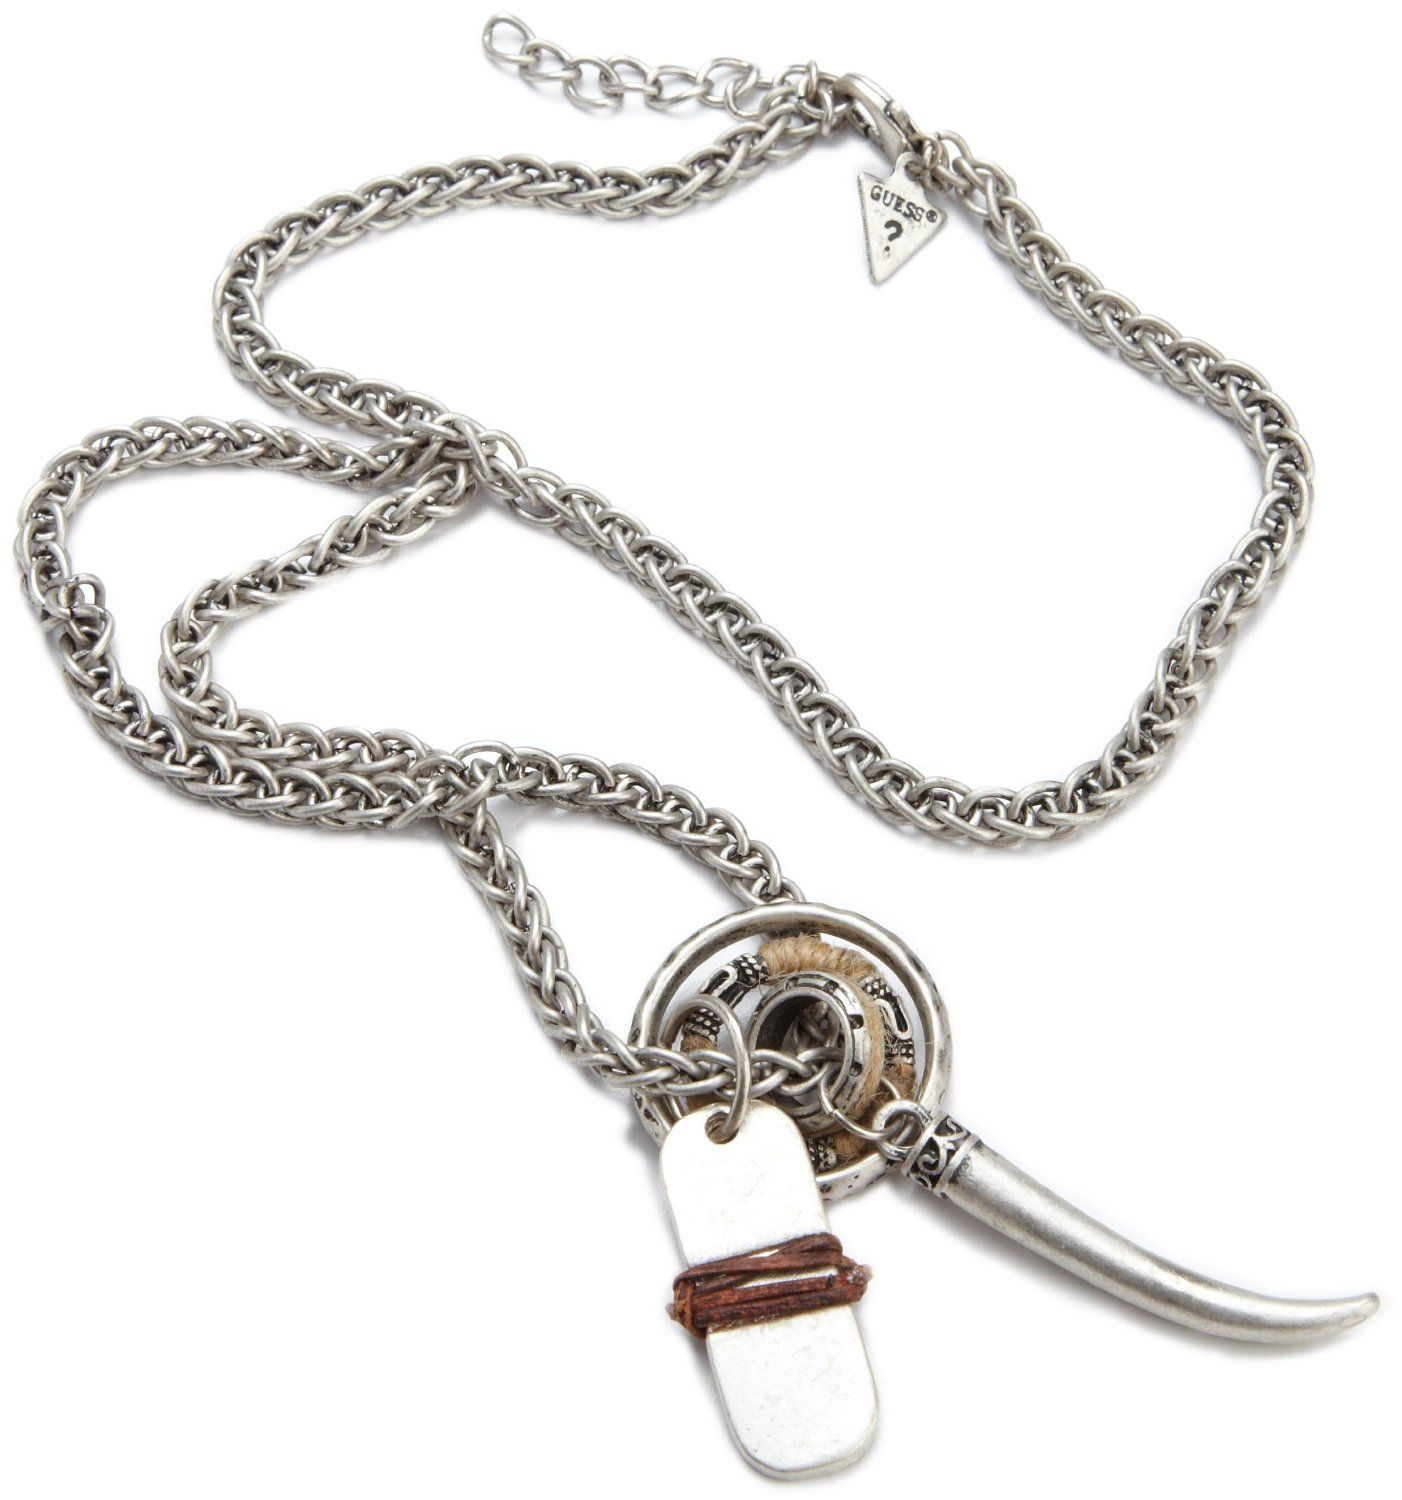 4afd67b53bd21 Guess Mens Leather Wrapped Tag And Rings Necklace, (mens jewelry ...